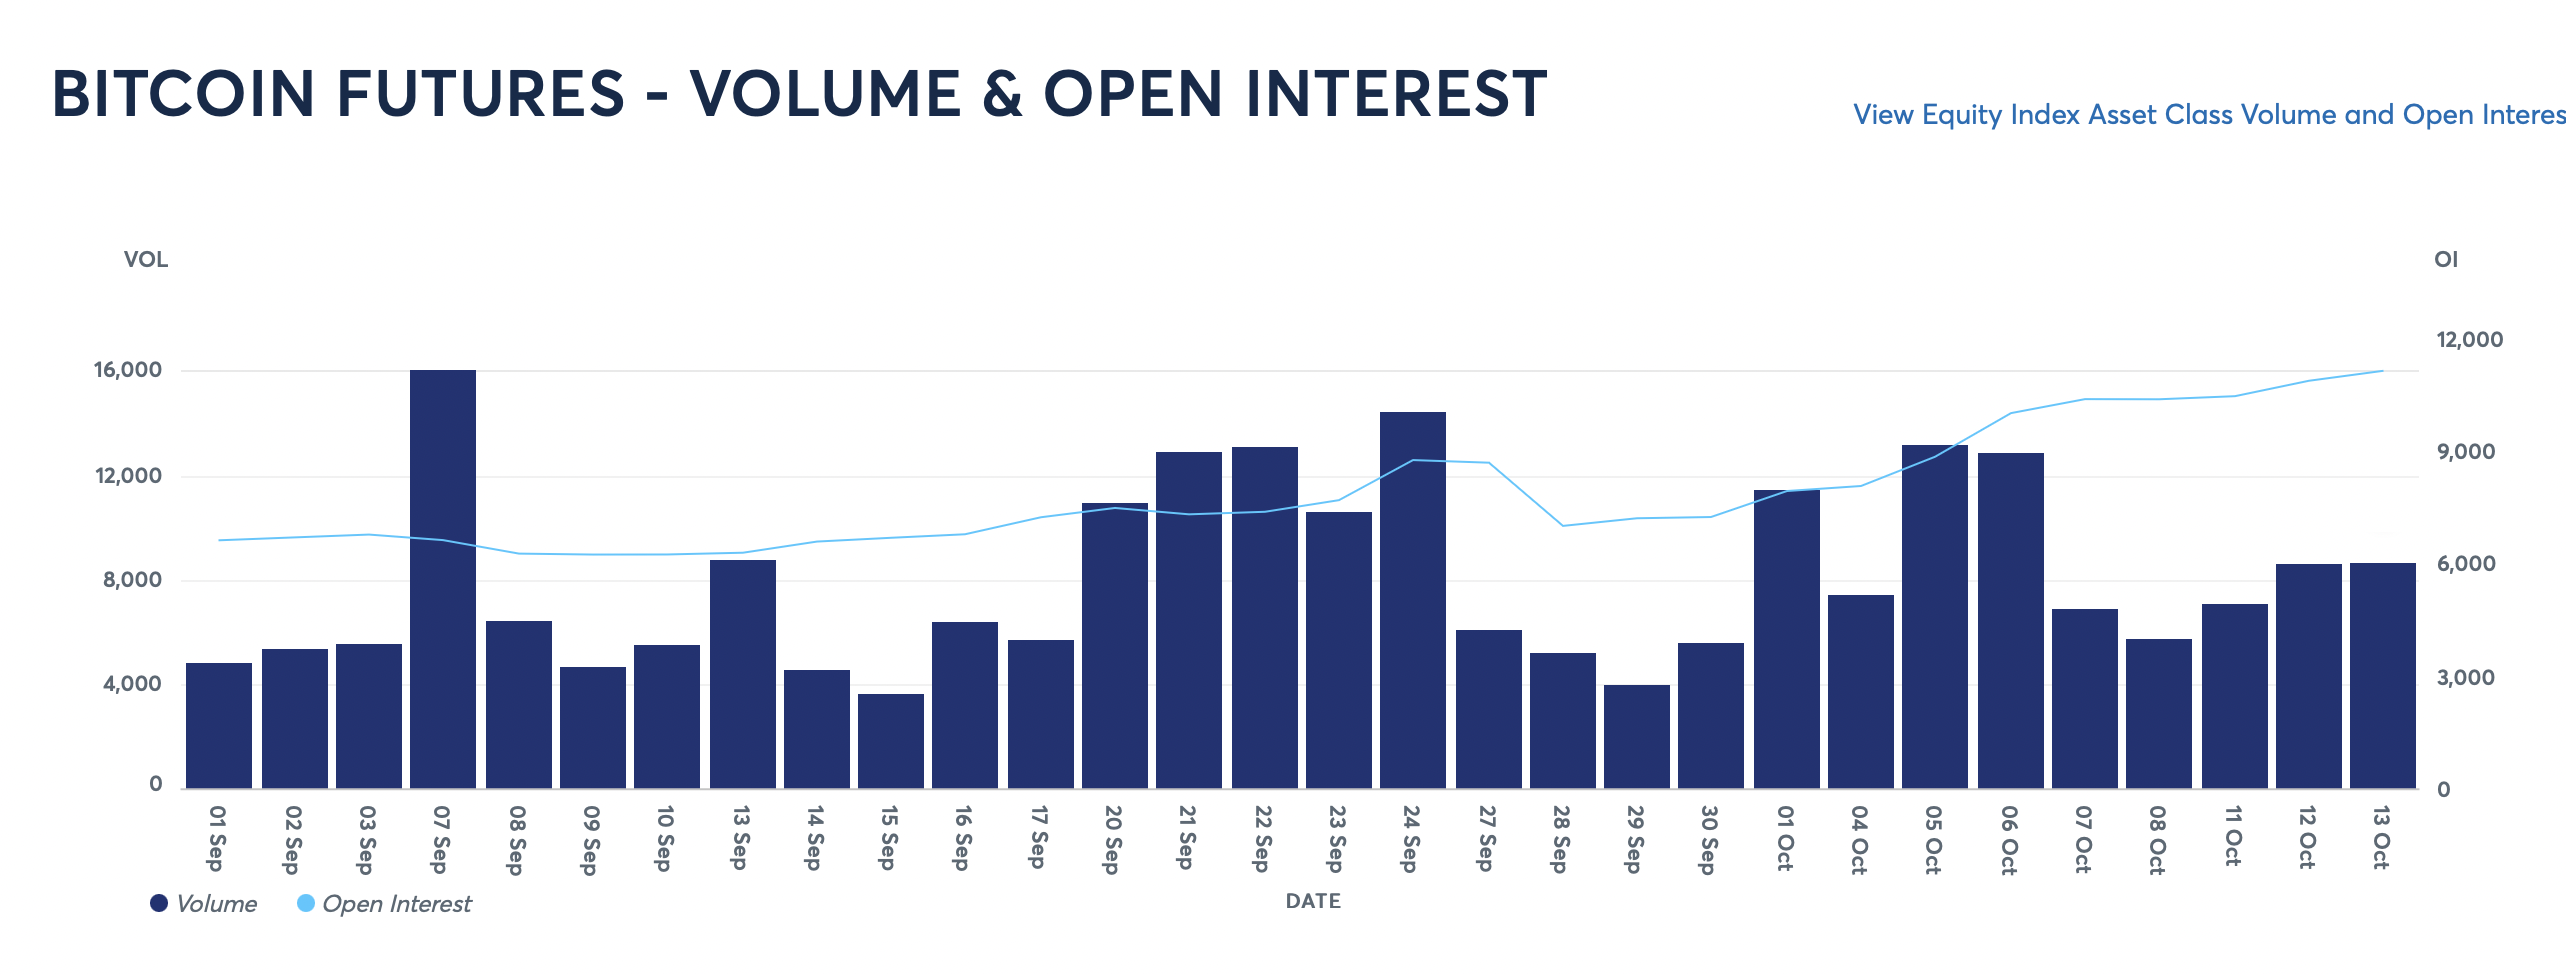 Open Interest CME Bitcoin futures hit an 8-month high, higher than when the BTC price hit $ 65,000